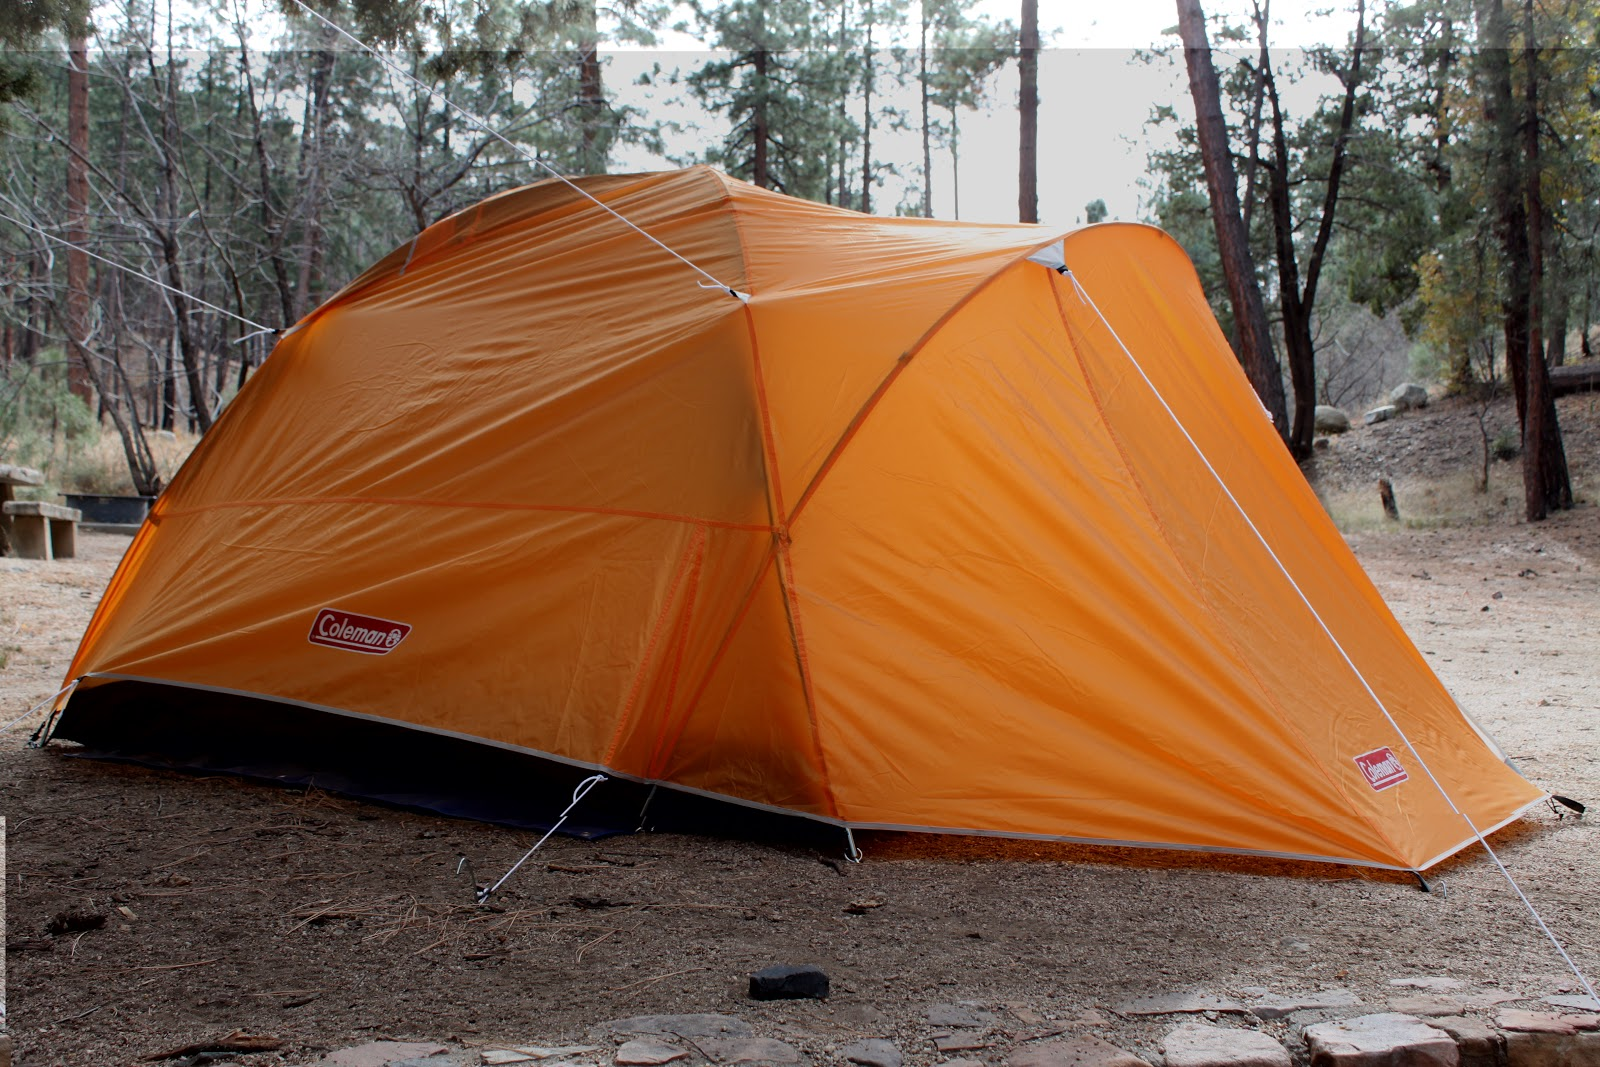 Stereowise Plus: Coleman Hooligan 3 Tent Review